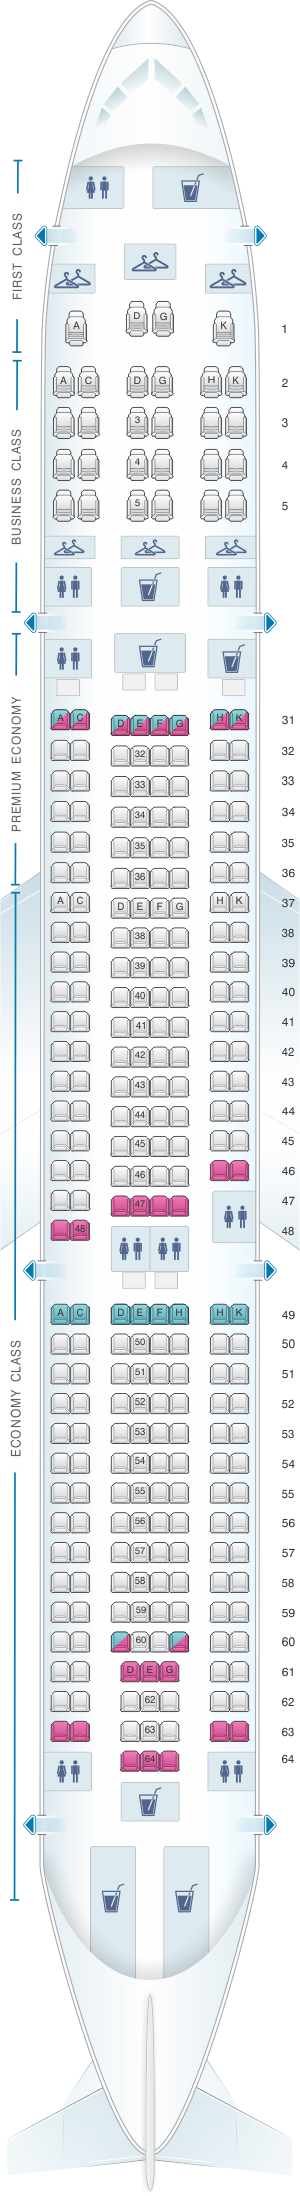 Seat map for China Southern Airlines Airbus A330-300 Layout A